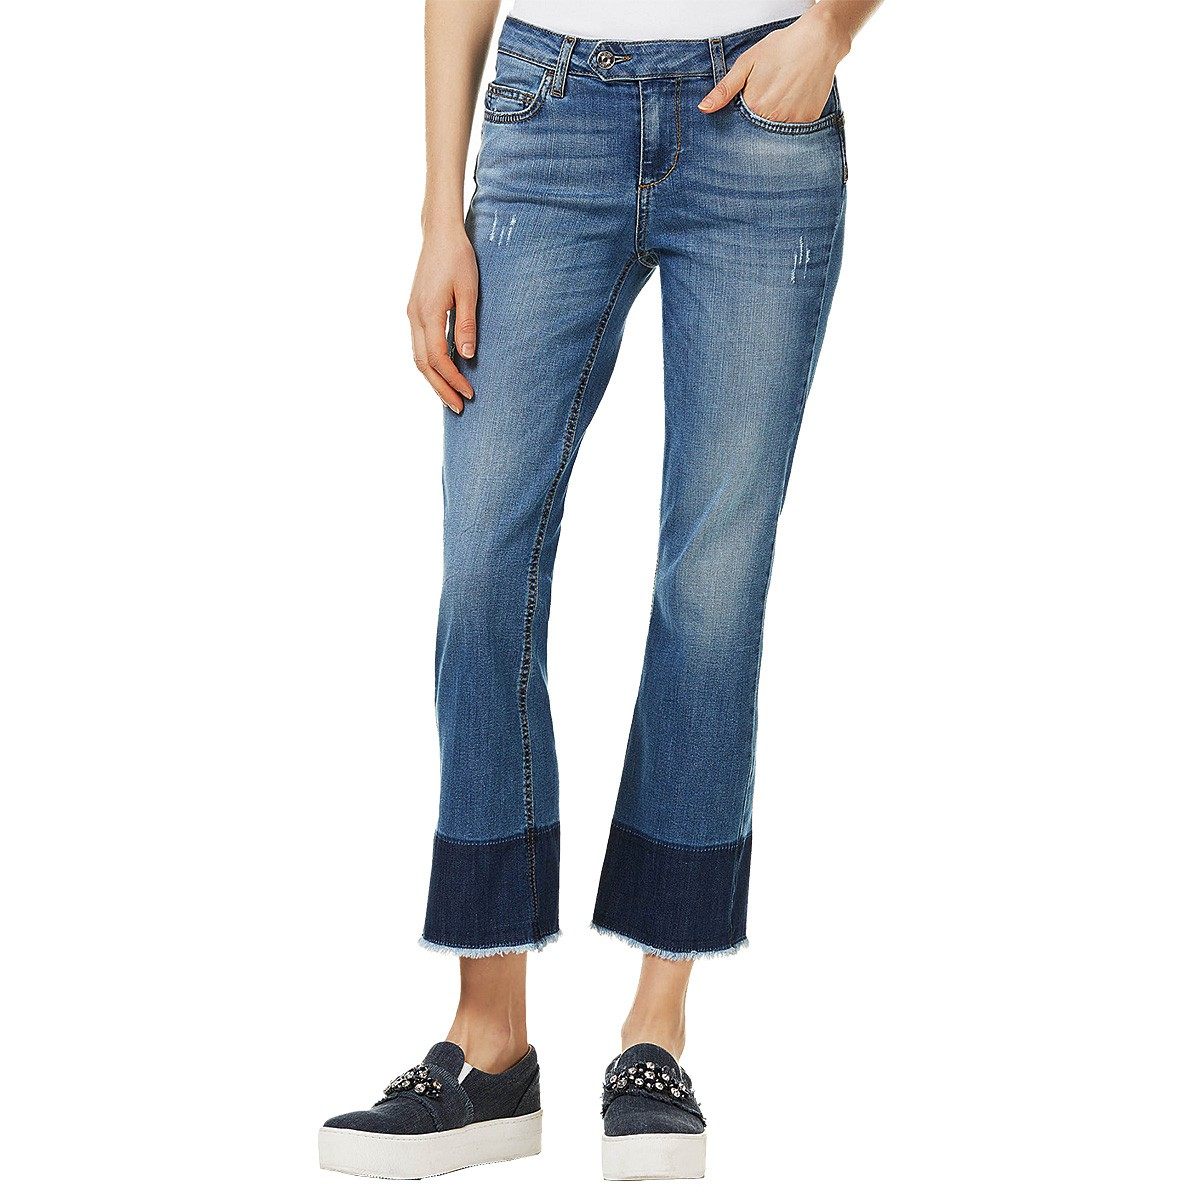 enorme sconto c67c3 56b04 Jeans Liu-Jo Bottom Up Microflair Woman - Leisure clothing